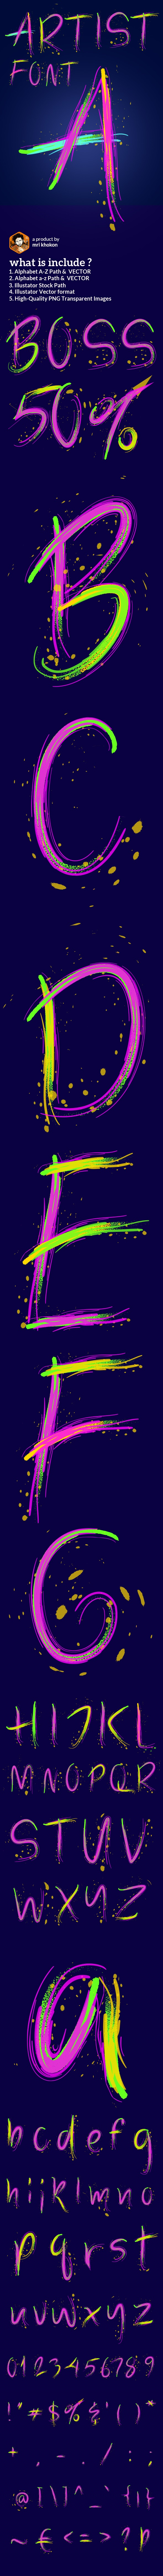 Artistic Colorful Alphabet - Artistic Brushes